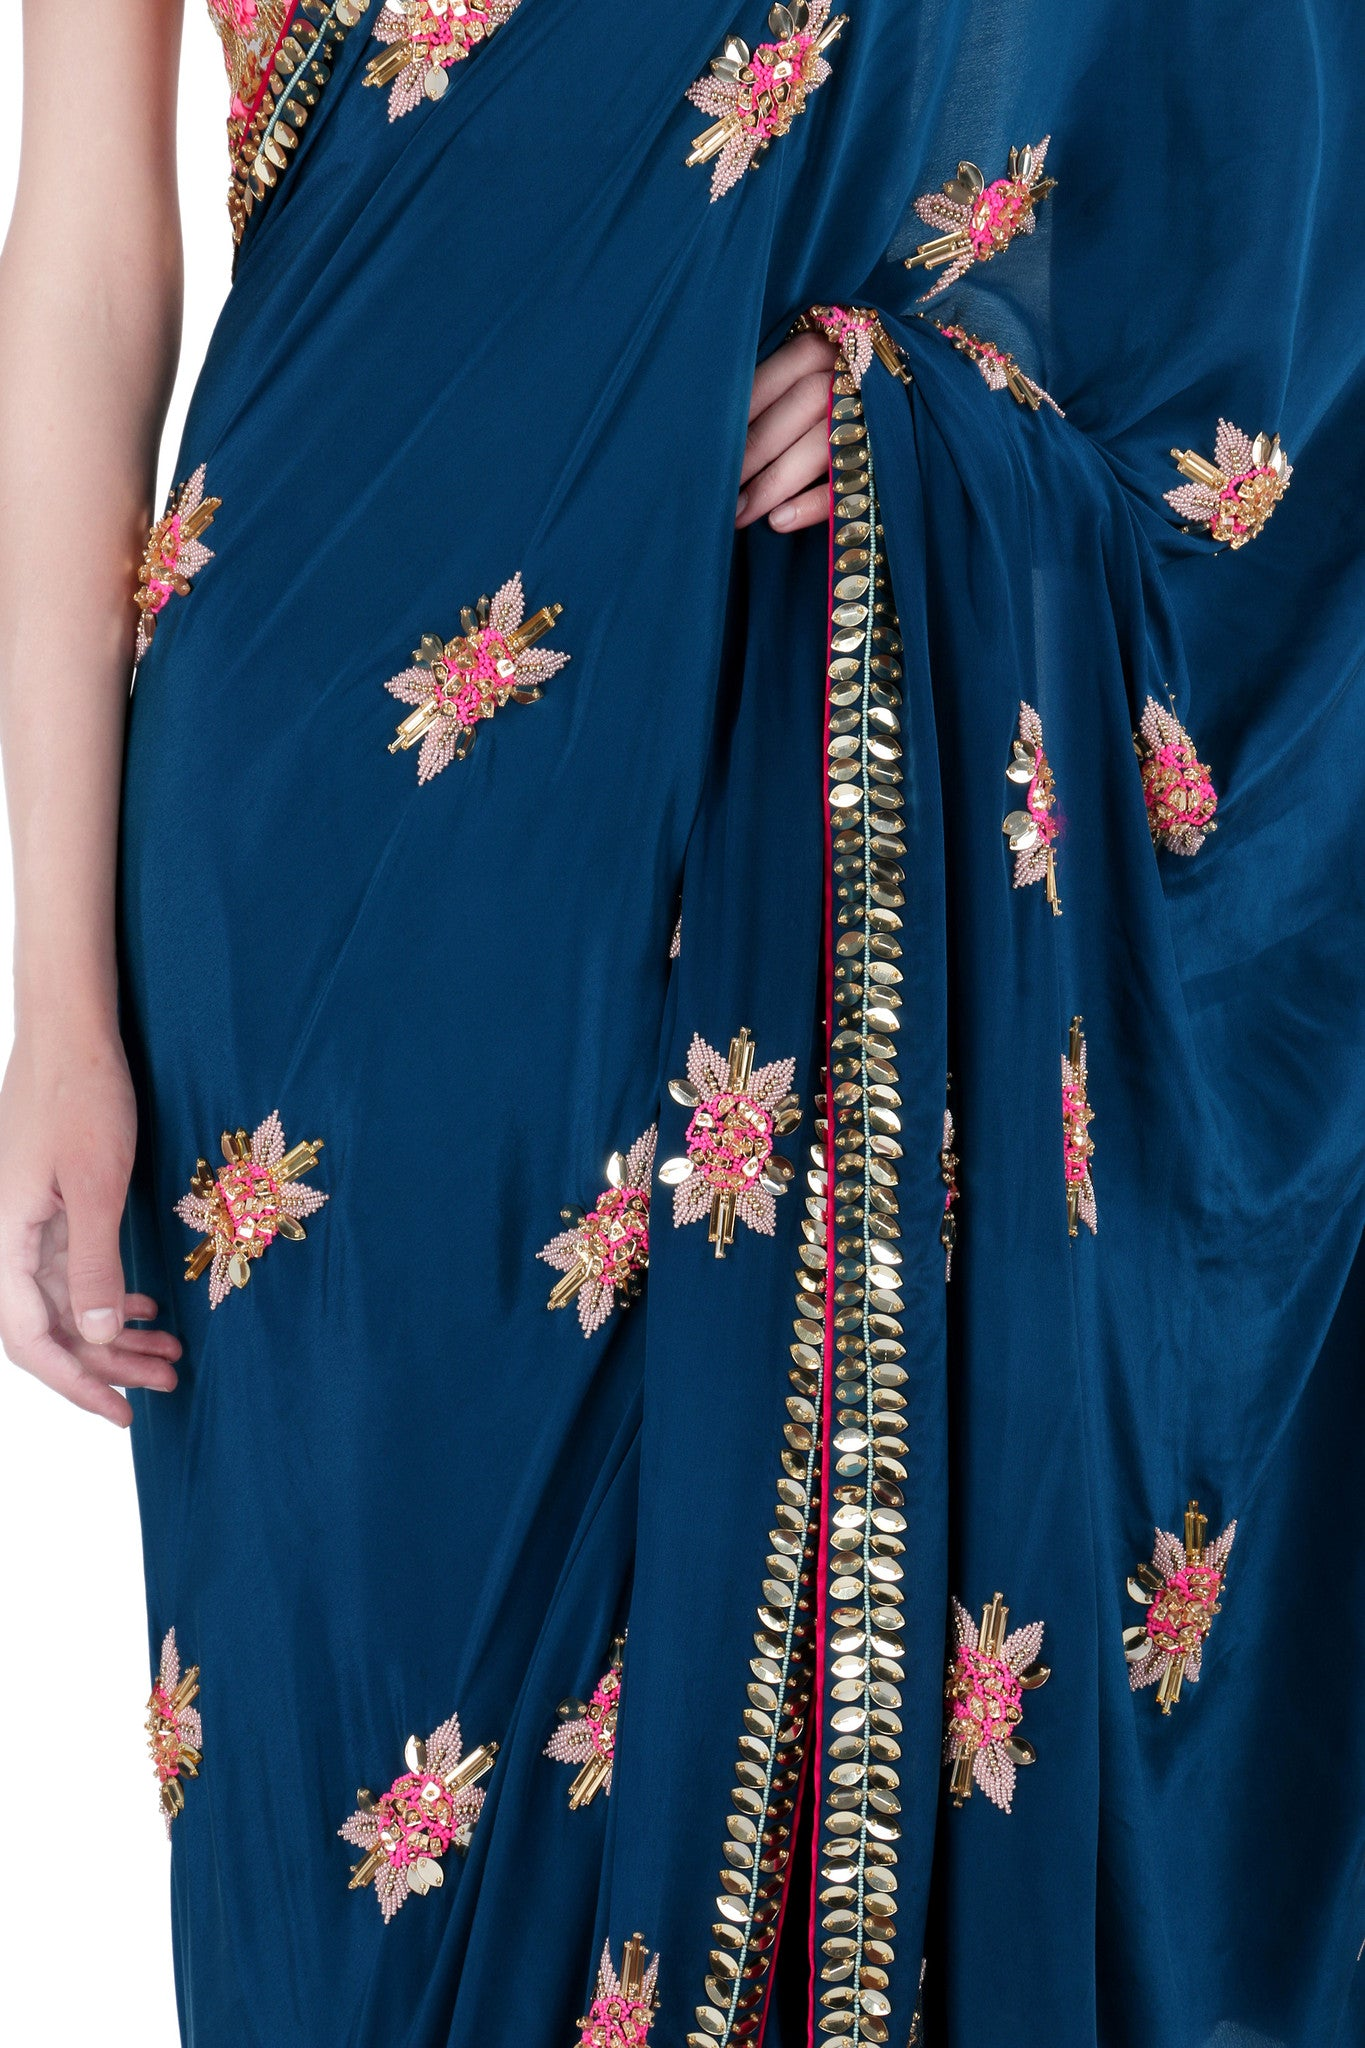 Sapphire Blue Crepe Saree with Rose Motifs Close-Up